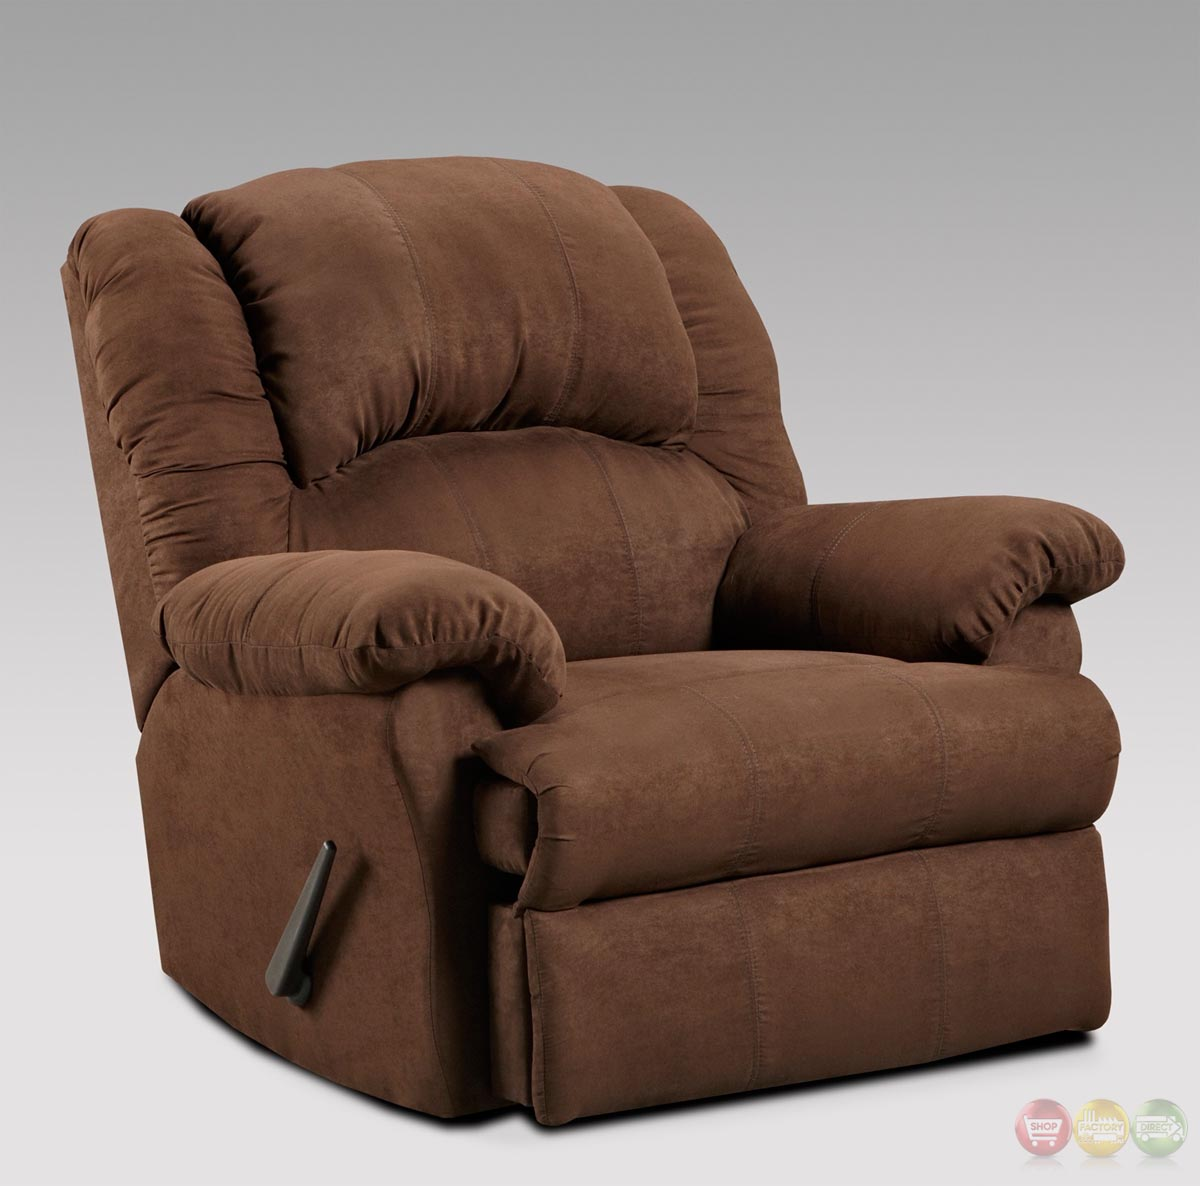 Recliner Rocking Chair Aruba Chocolate Brown Fabric Rocker Recliner Casual